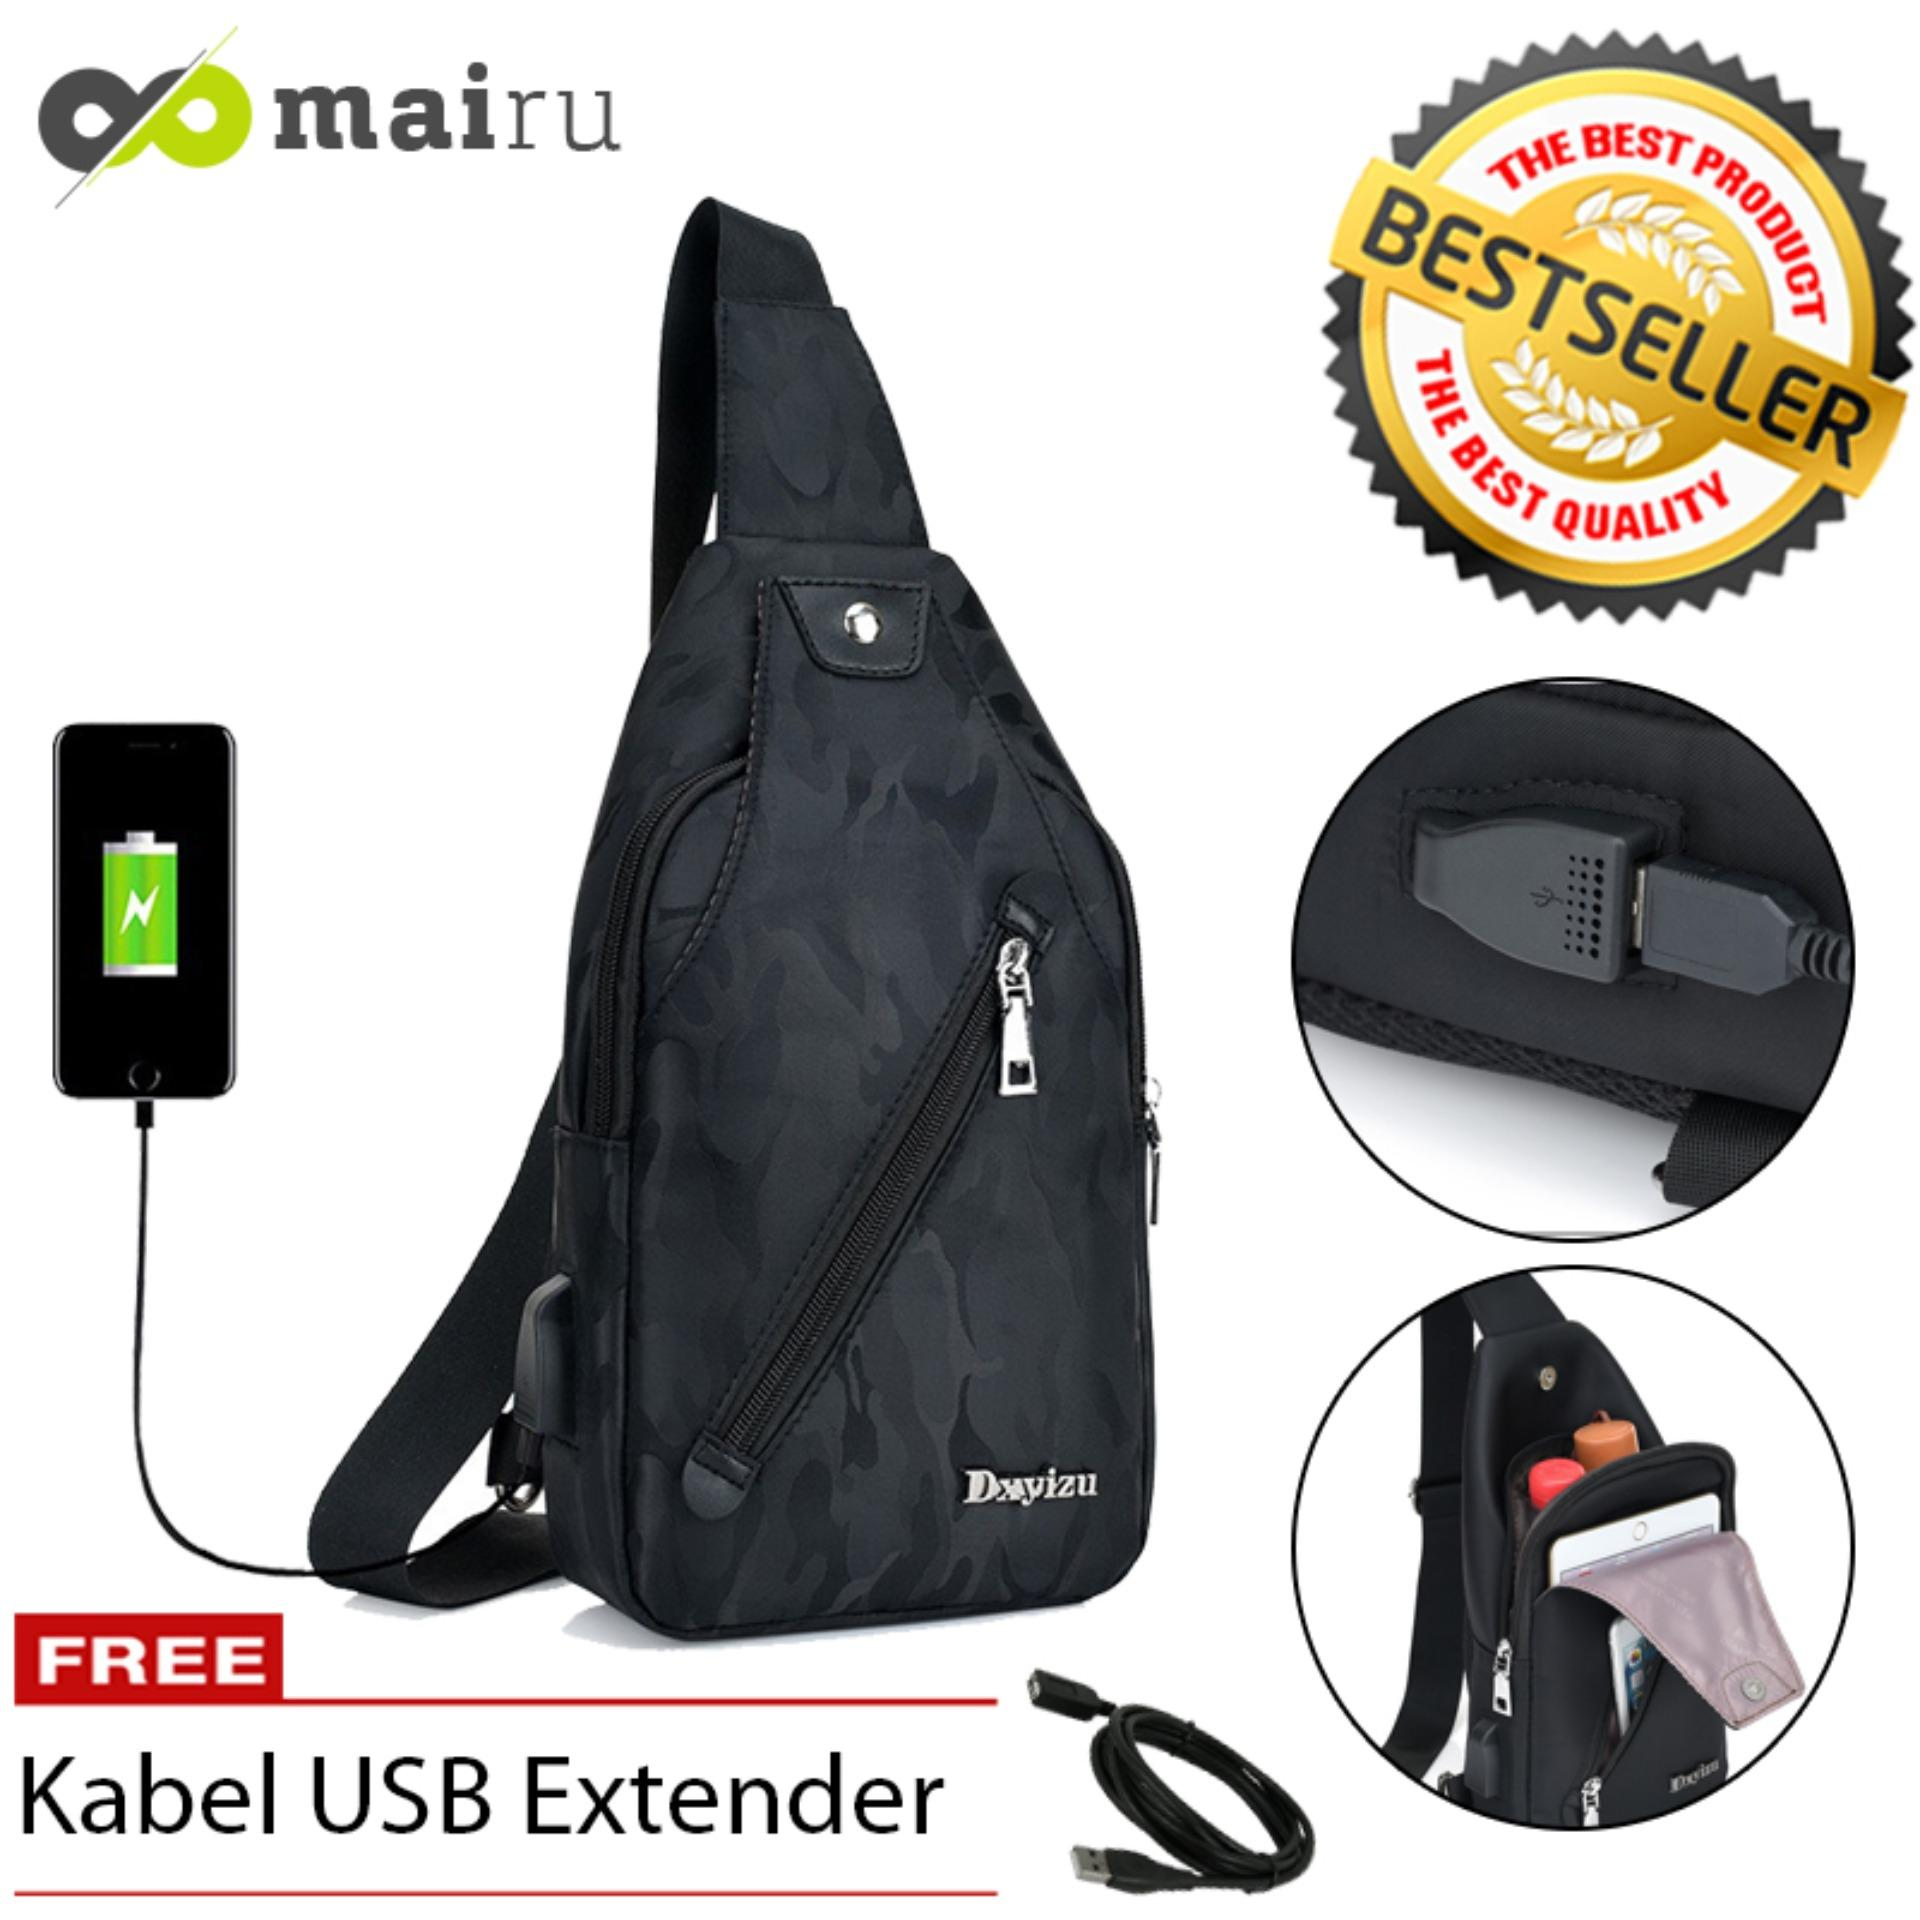 Harga Mairu Dxyizu 533 Tas Selempang Pria Sling Bag Cross Body With Usb Charger Support For Iphone Ipad Mini Xiaomi Samsung Tab Tablet 8 Anti Theft Branded